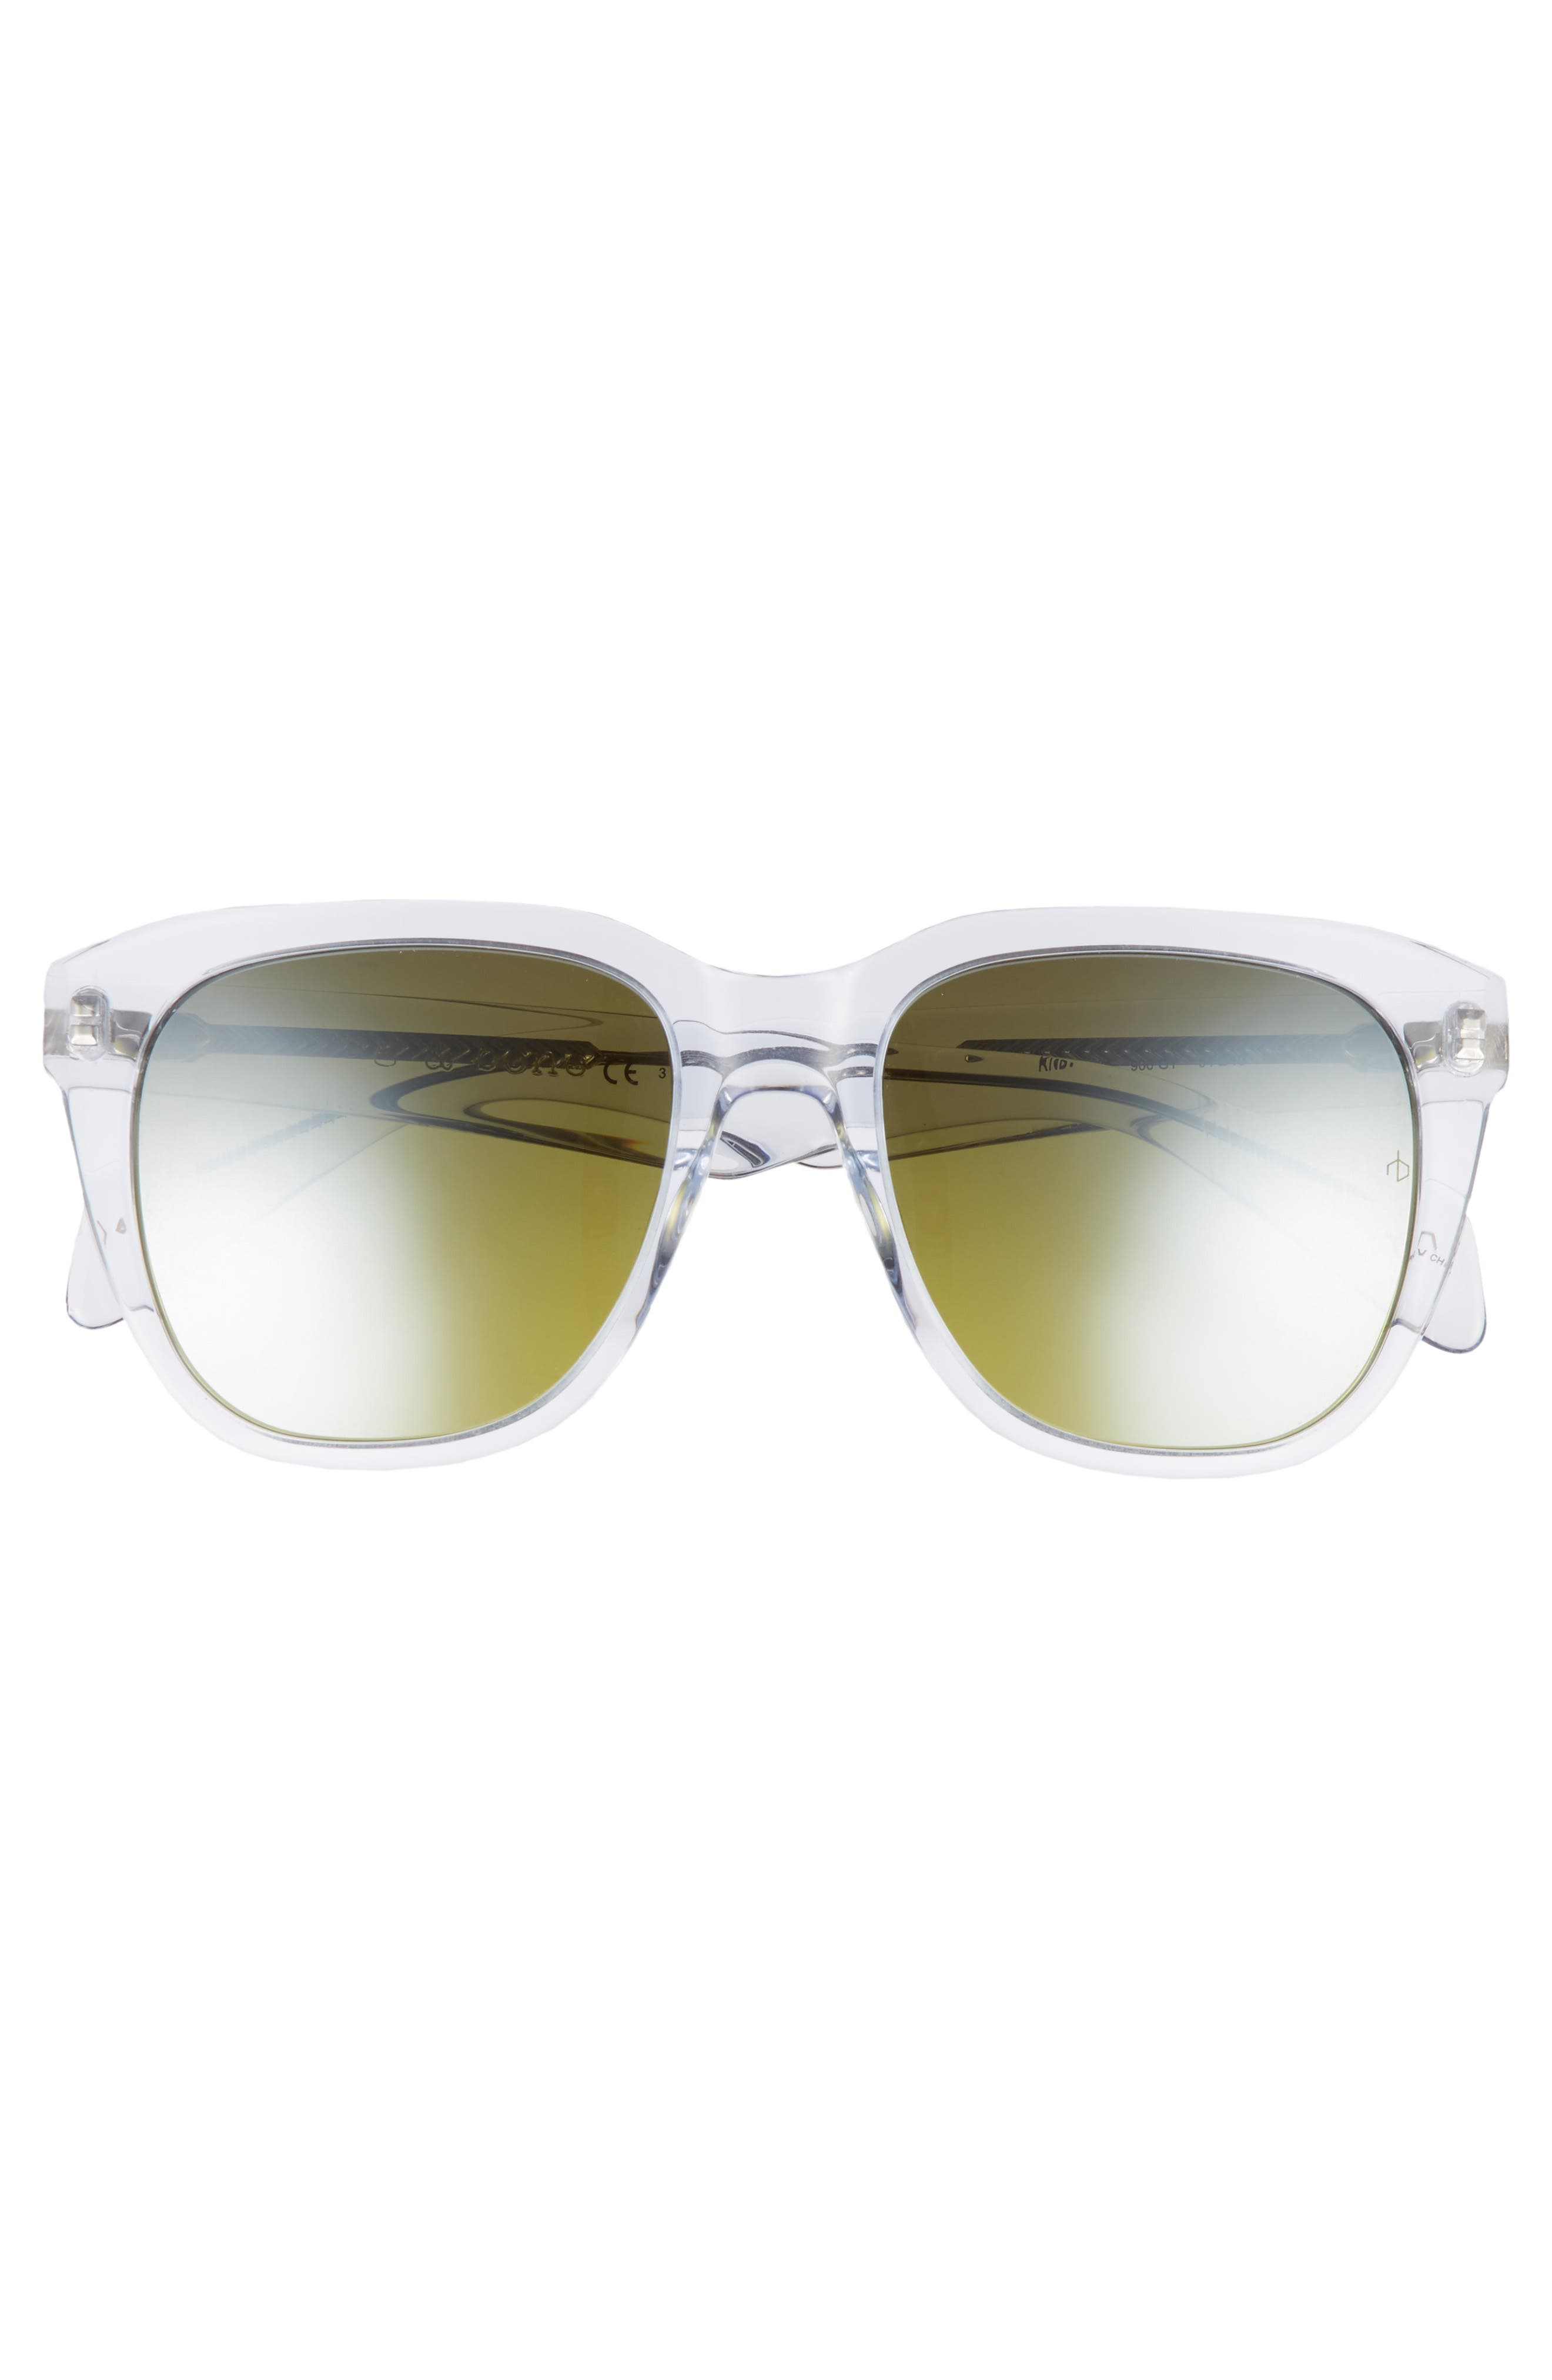 54mm Mirrored Sunglasses,                             Alternate thumbnail 2, color,                             CRYSTAL